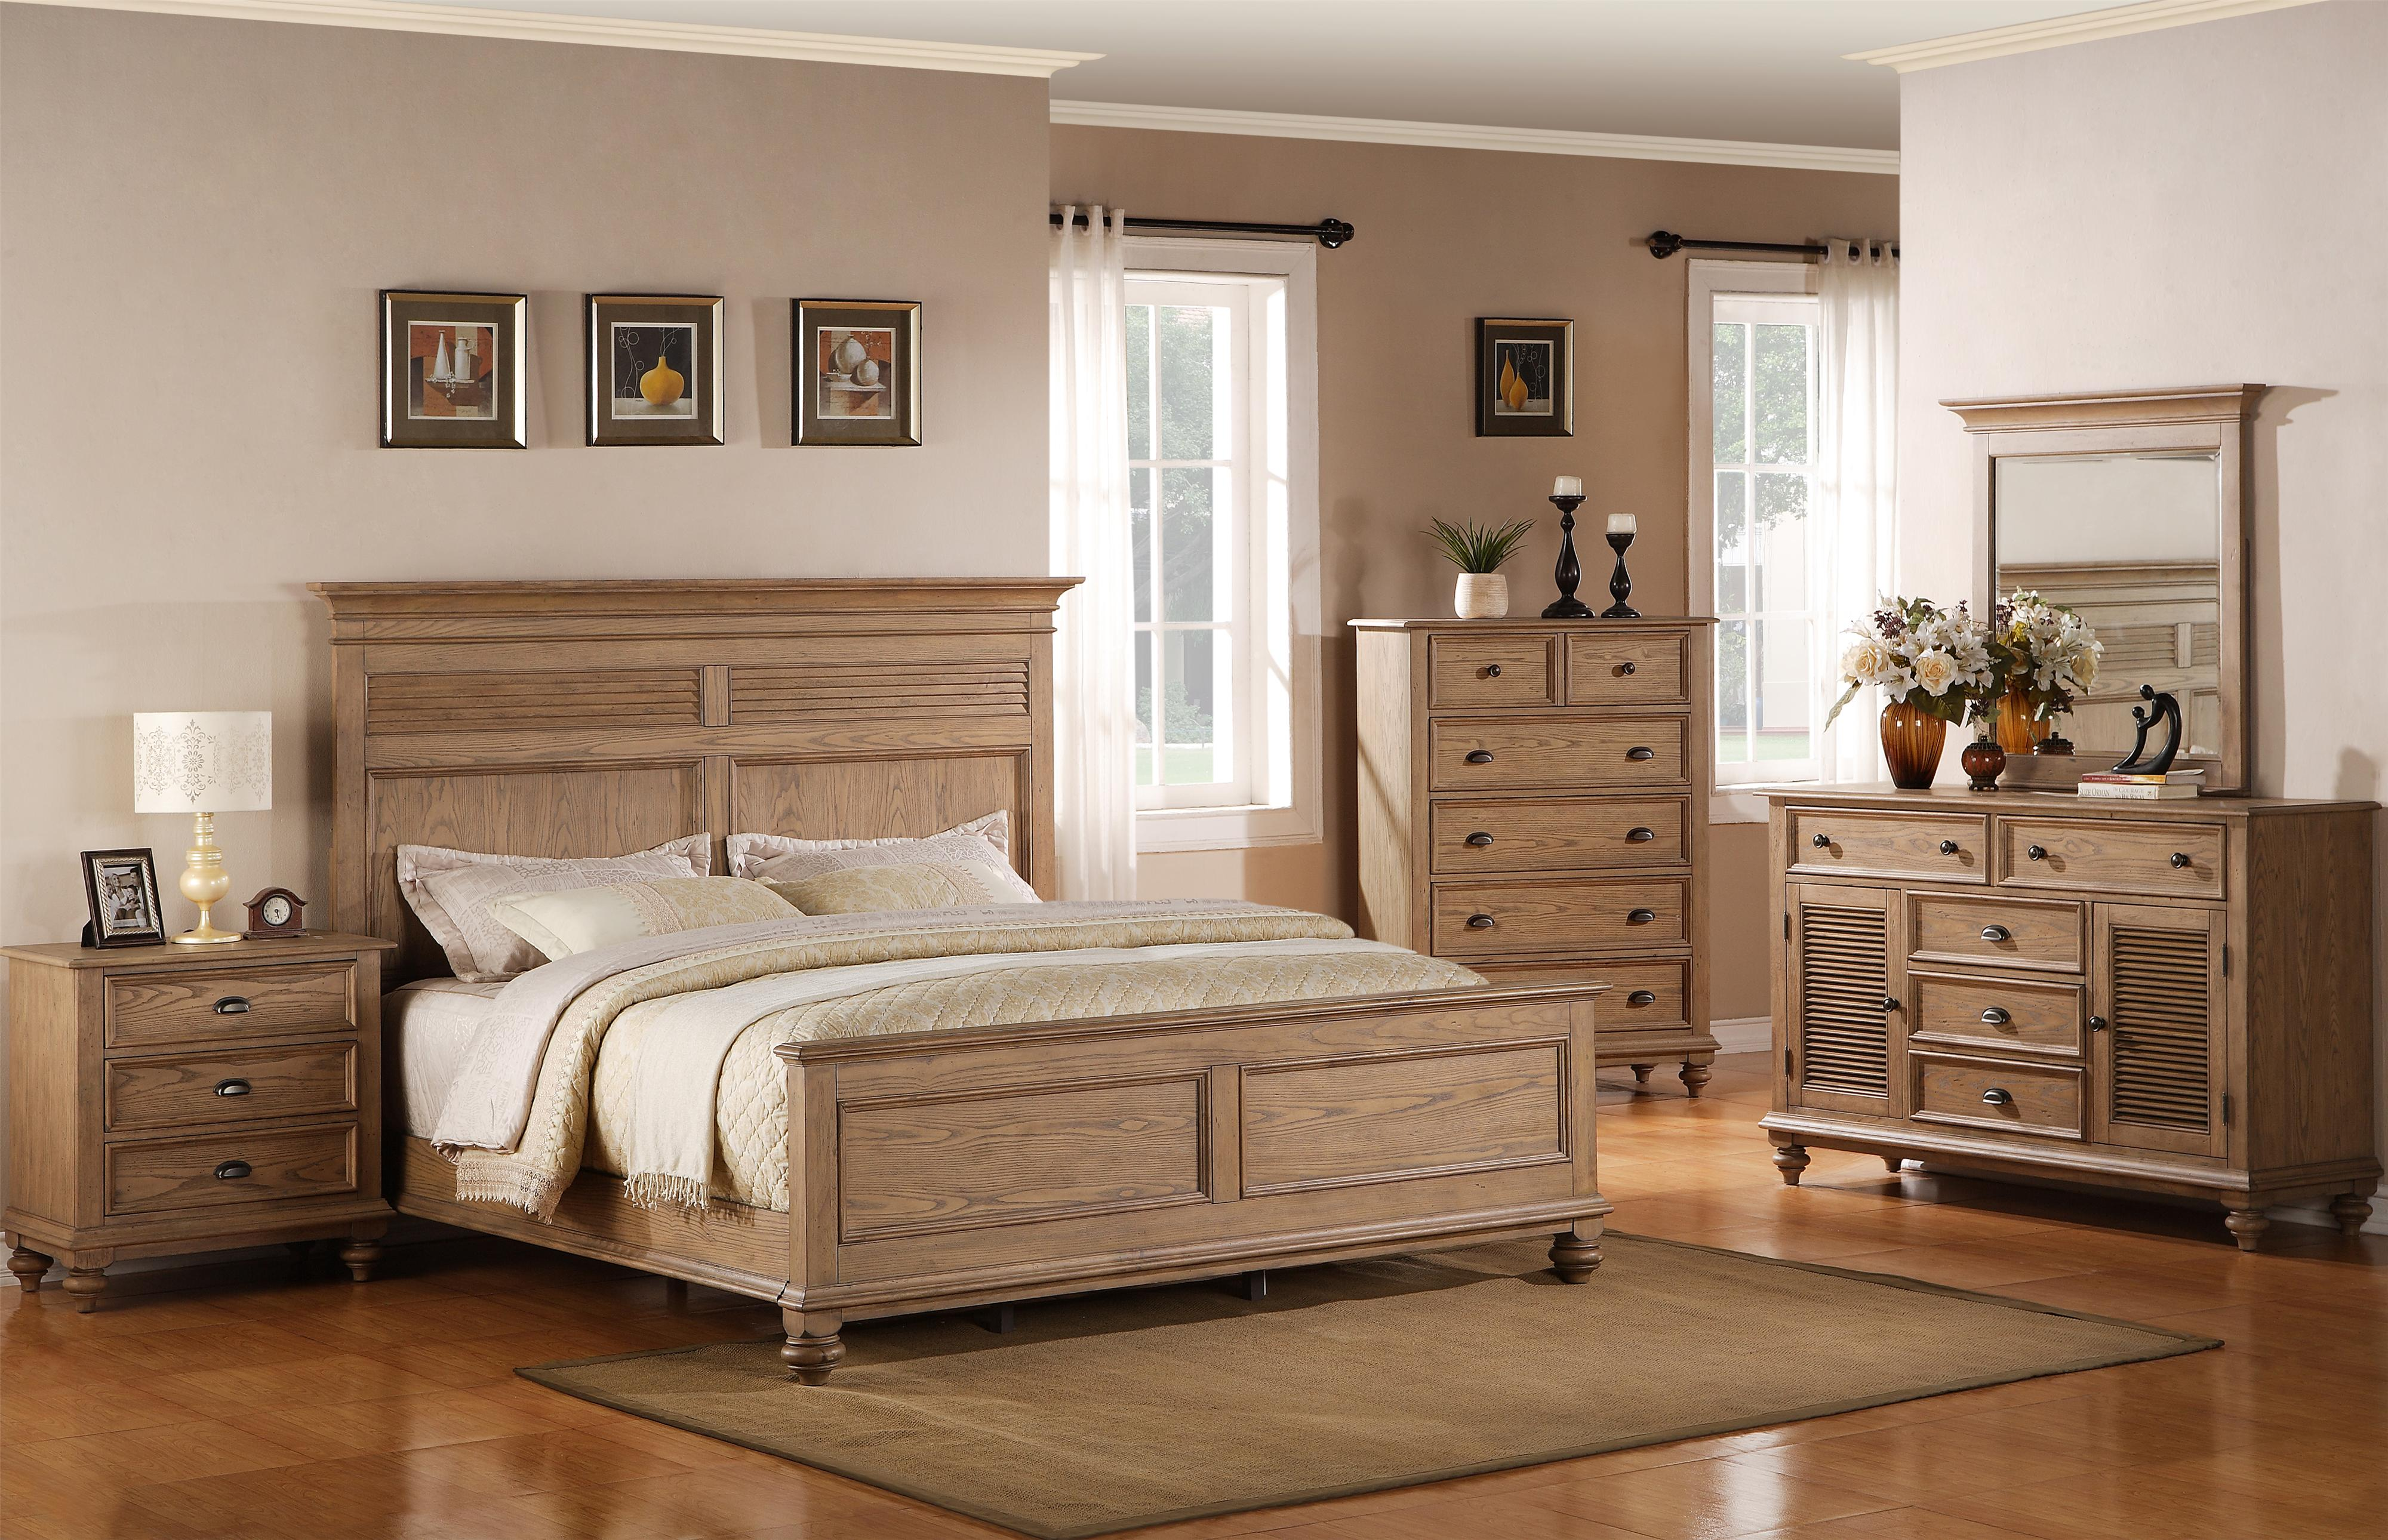 Riverside Furniture Coventry California King Bedroom Group - Item Number: 32400 C K Bedroom Group 2